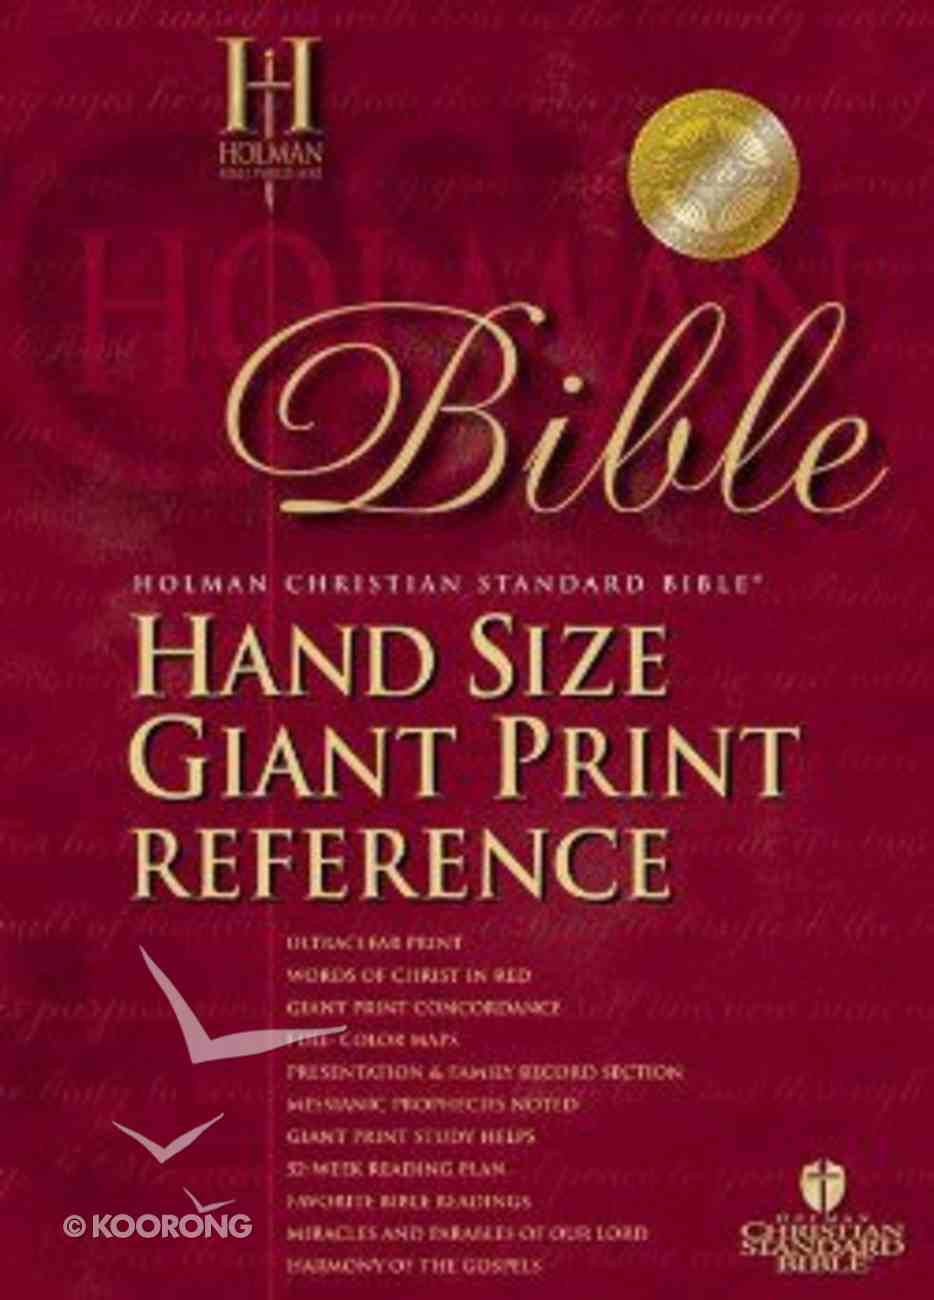 HCSB Hand Size Giant Print Reference Classic Edition Tan Bonded Leather